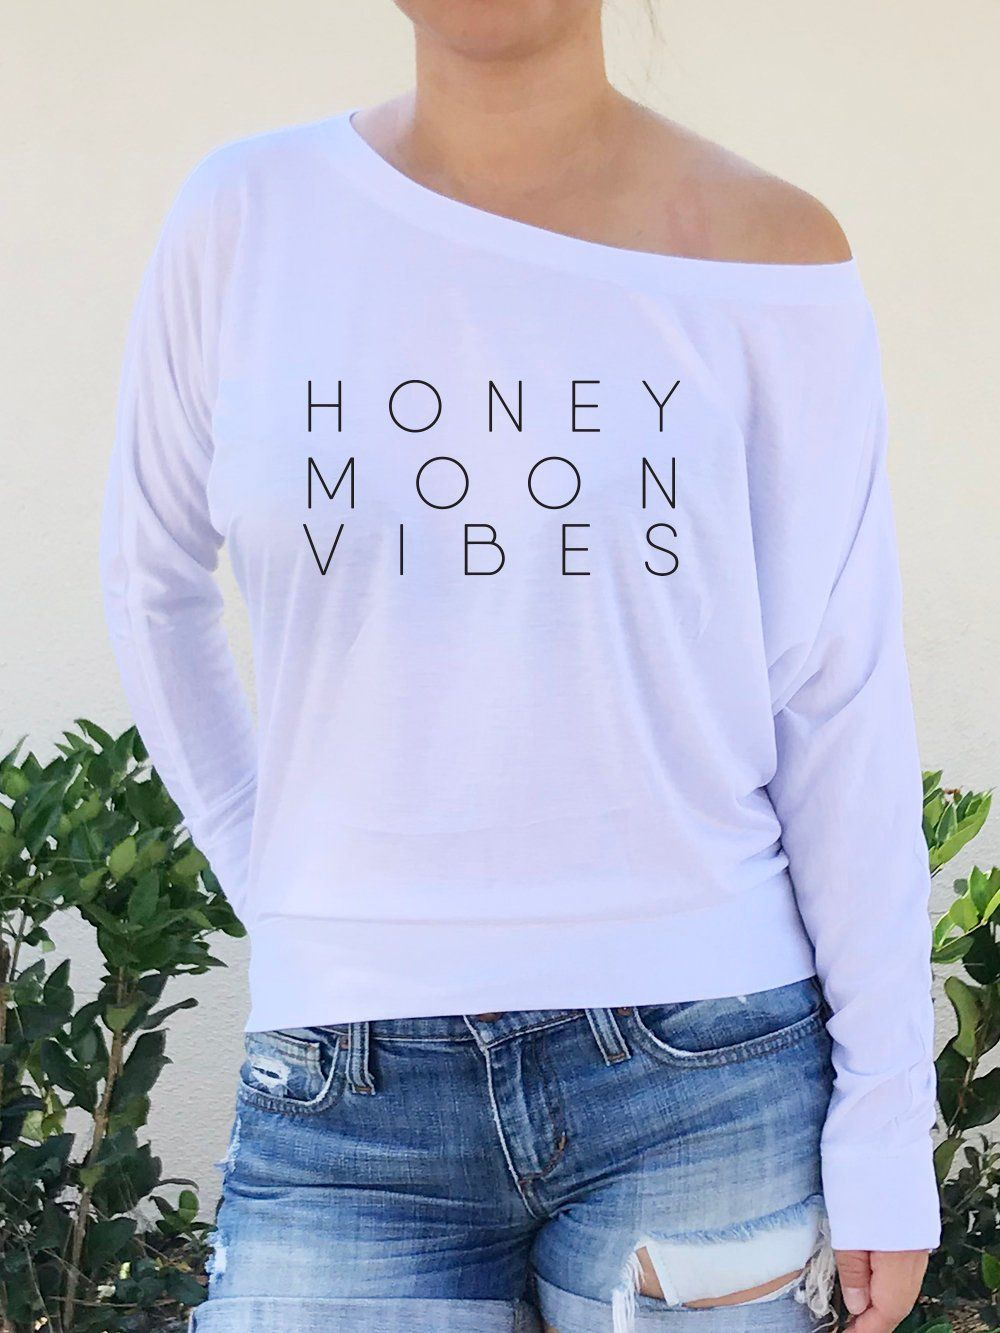 4f6a1564d27 Honeymoon Vibes Long Sleeve Off the Shoulder Slouchy Top, Honeymoon, Just  Married, Wedding Gift